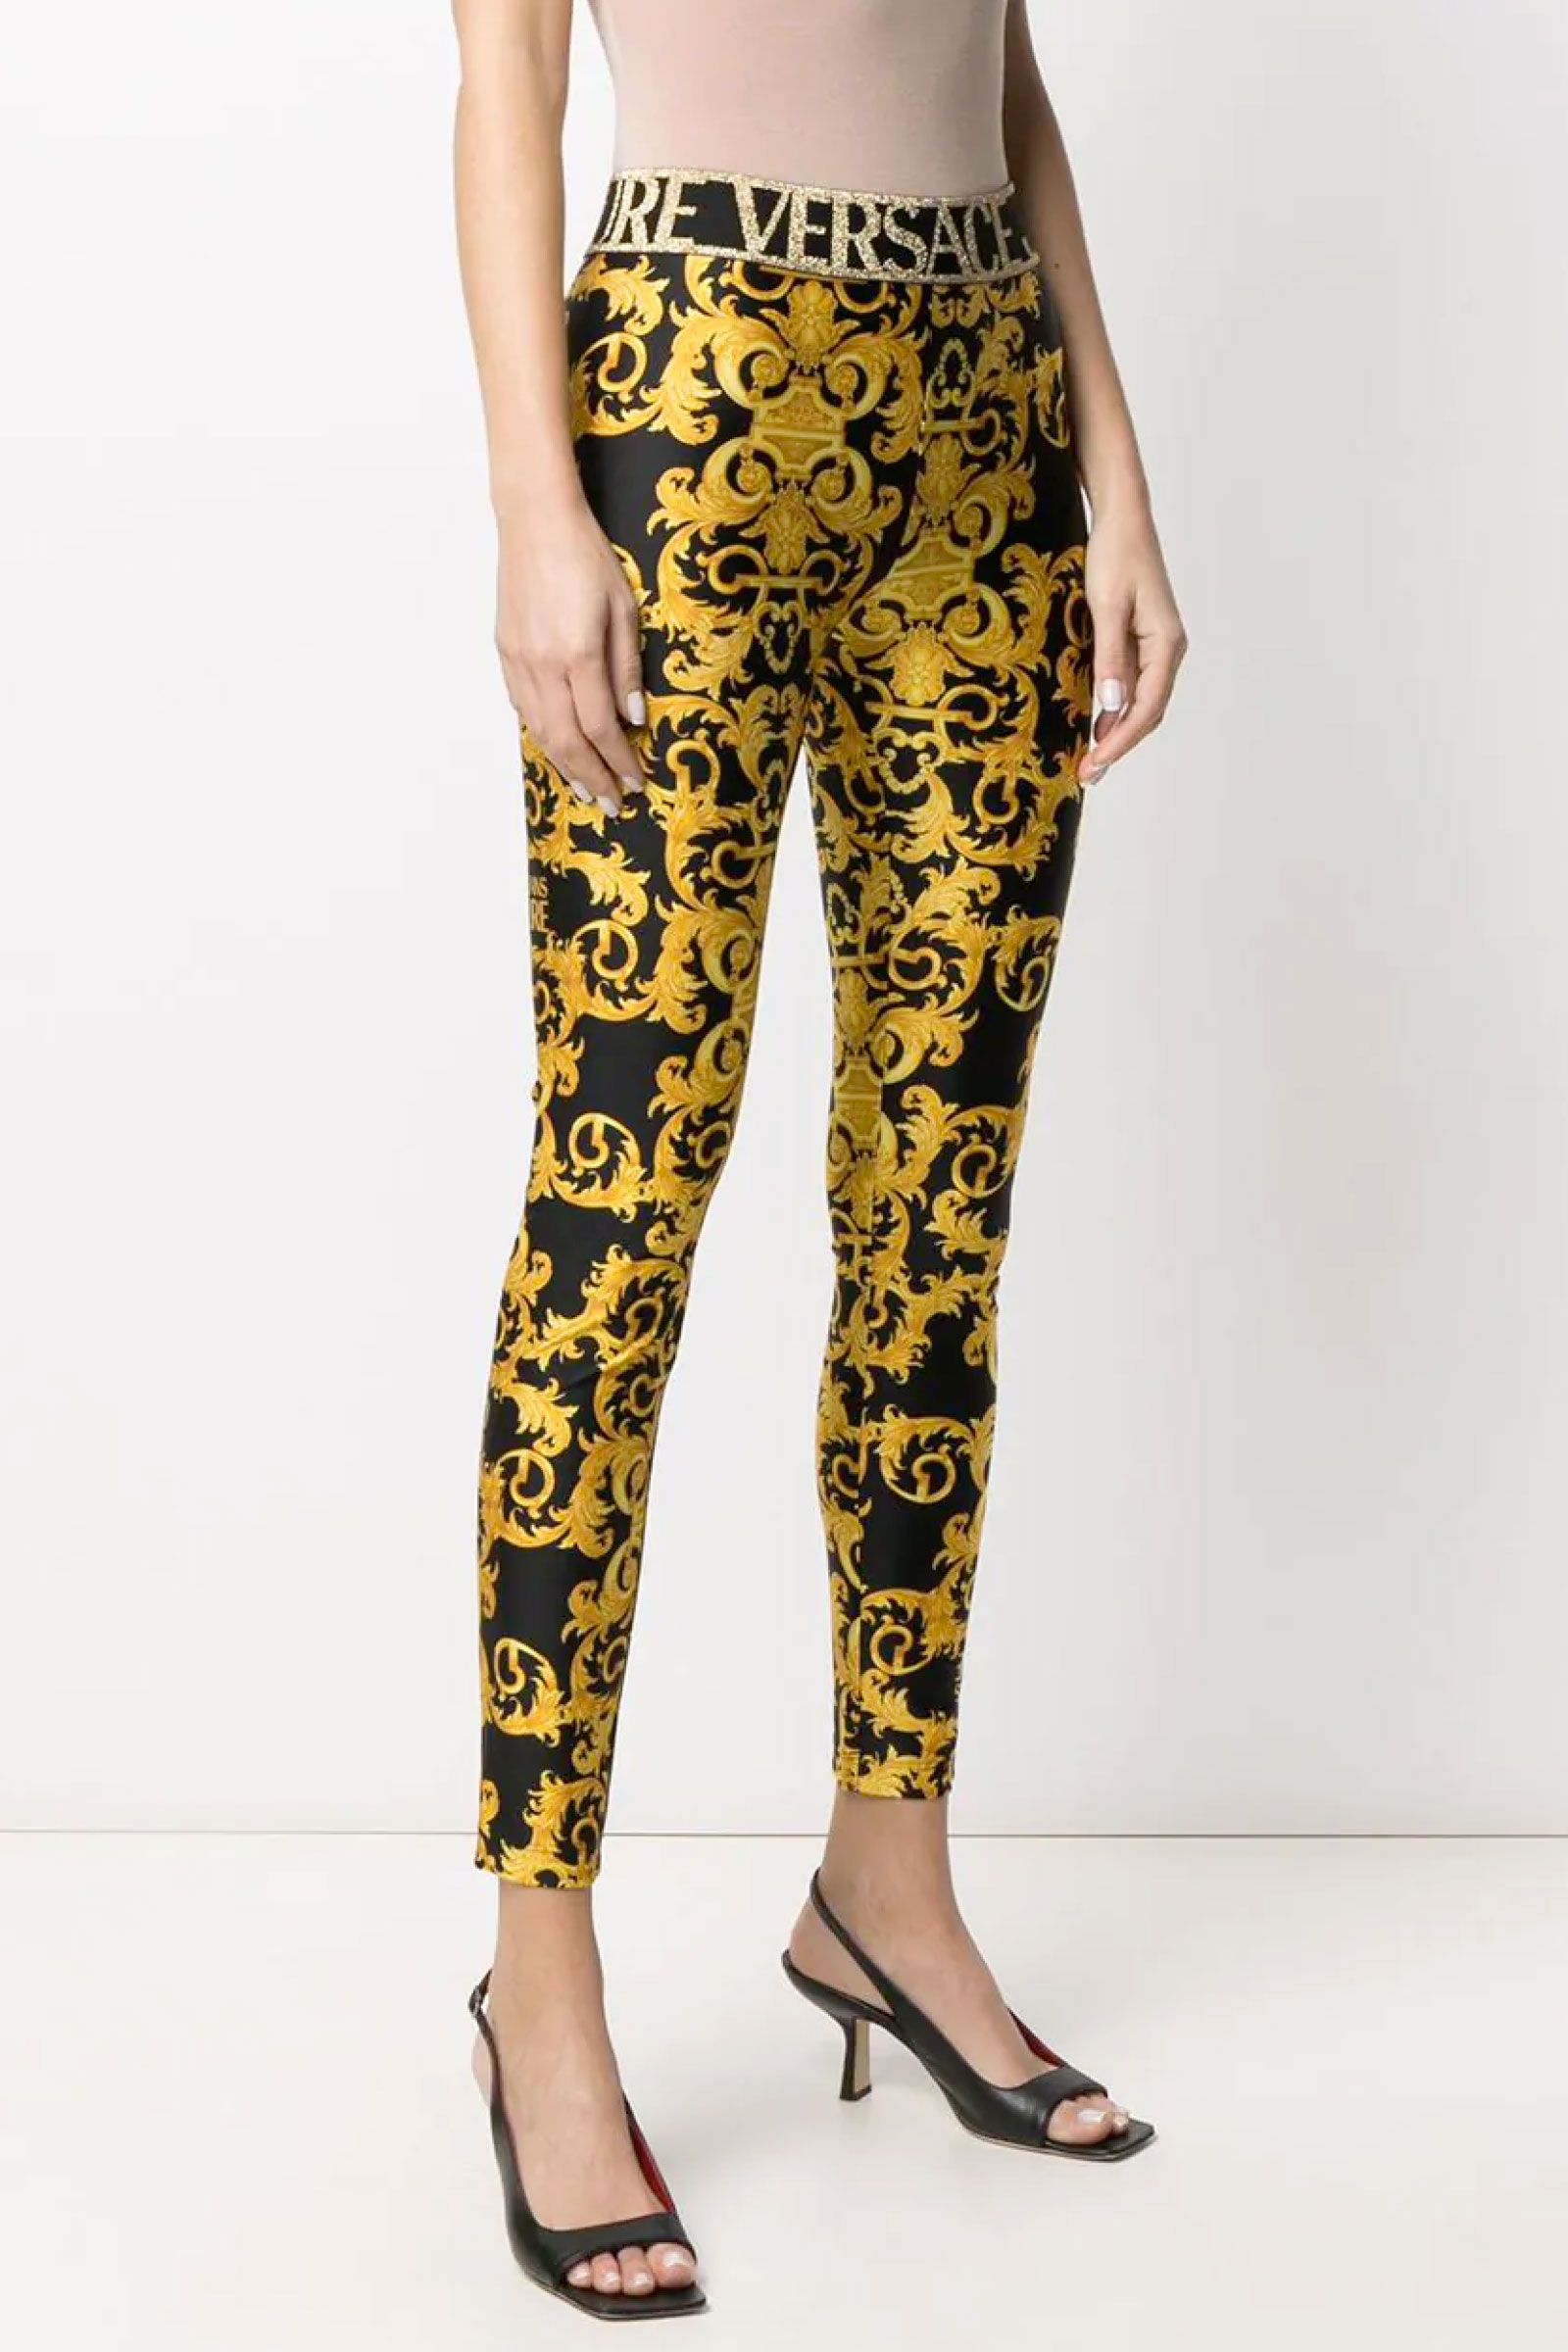 VERSACE JEANS COUTURE Leggins Donna VERSACE JEANS COUTURE | Legging | D5HWA101S0125899